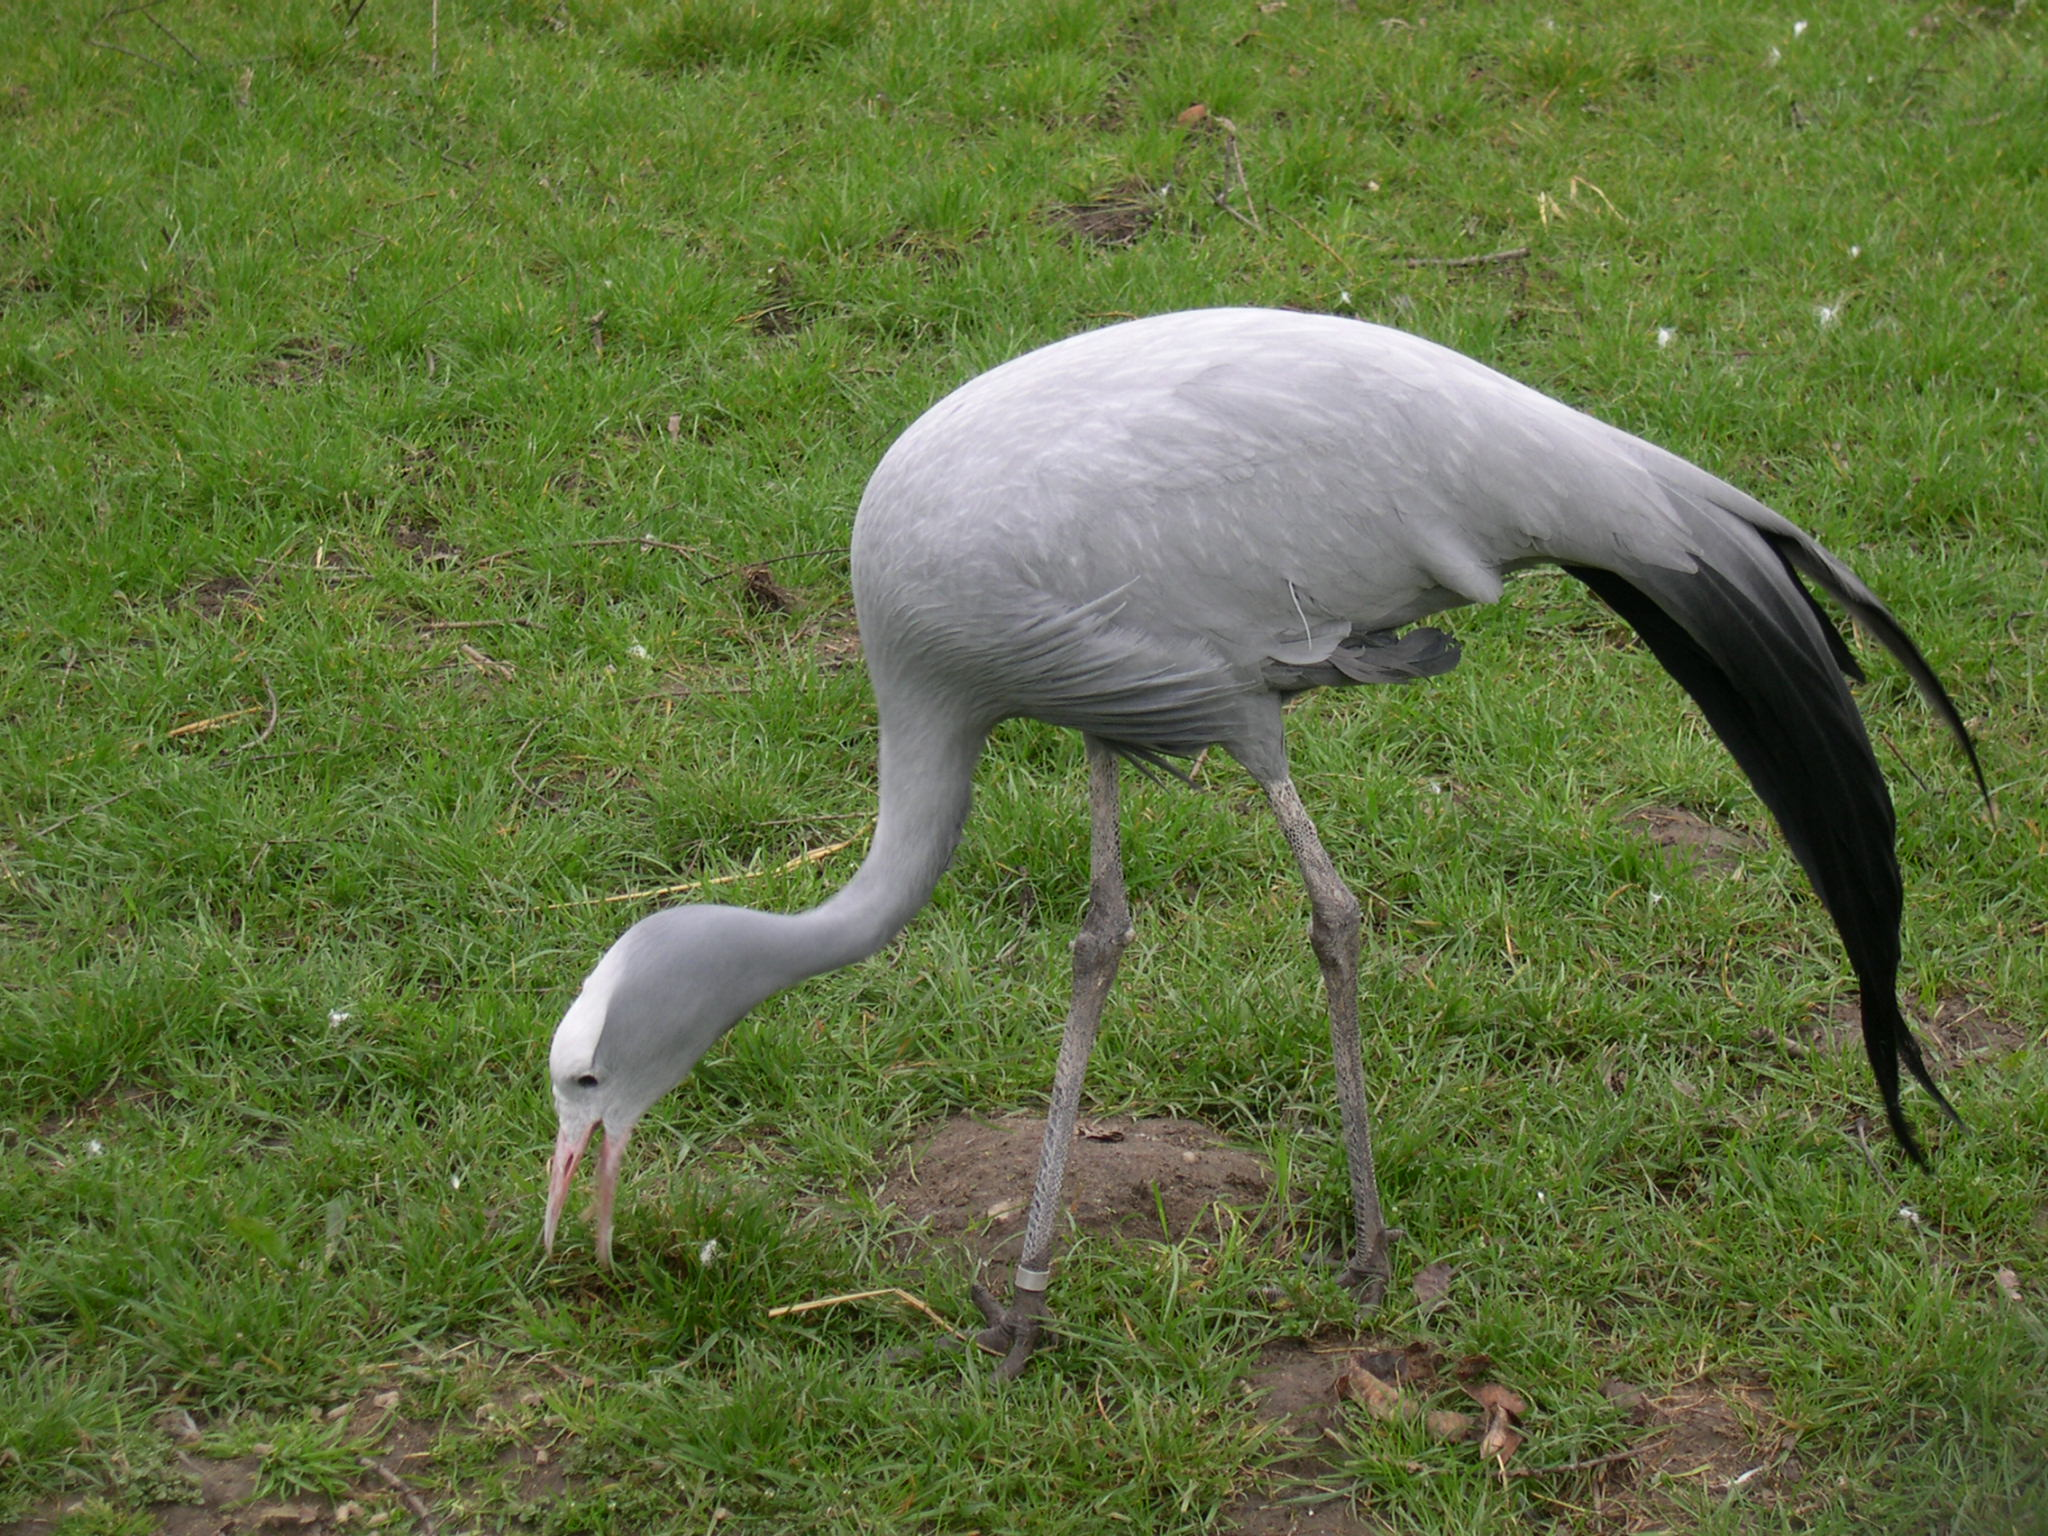 Blue crane (Anthropoides paradisea) feeding in Diergaarde Blijdorp (Rotterdam Zoo)